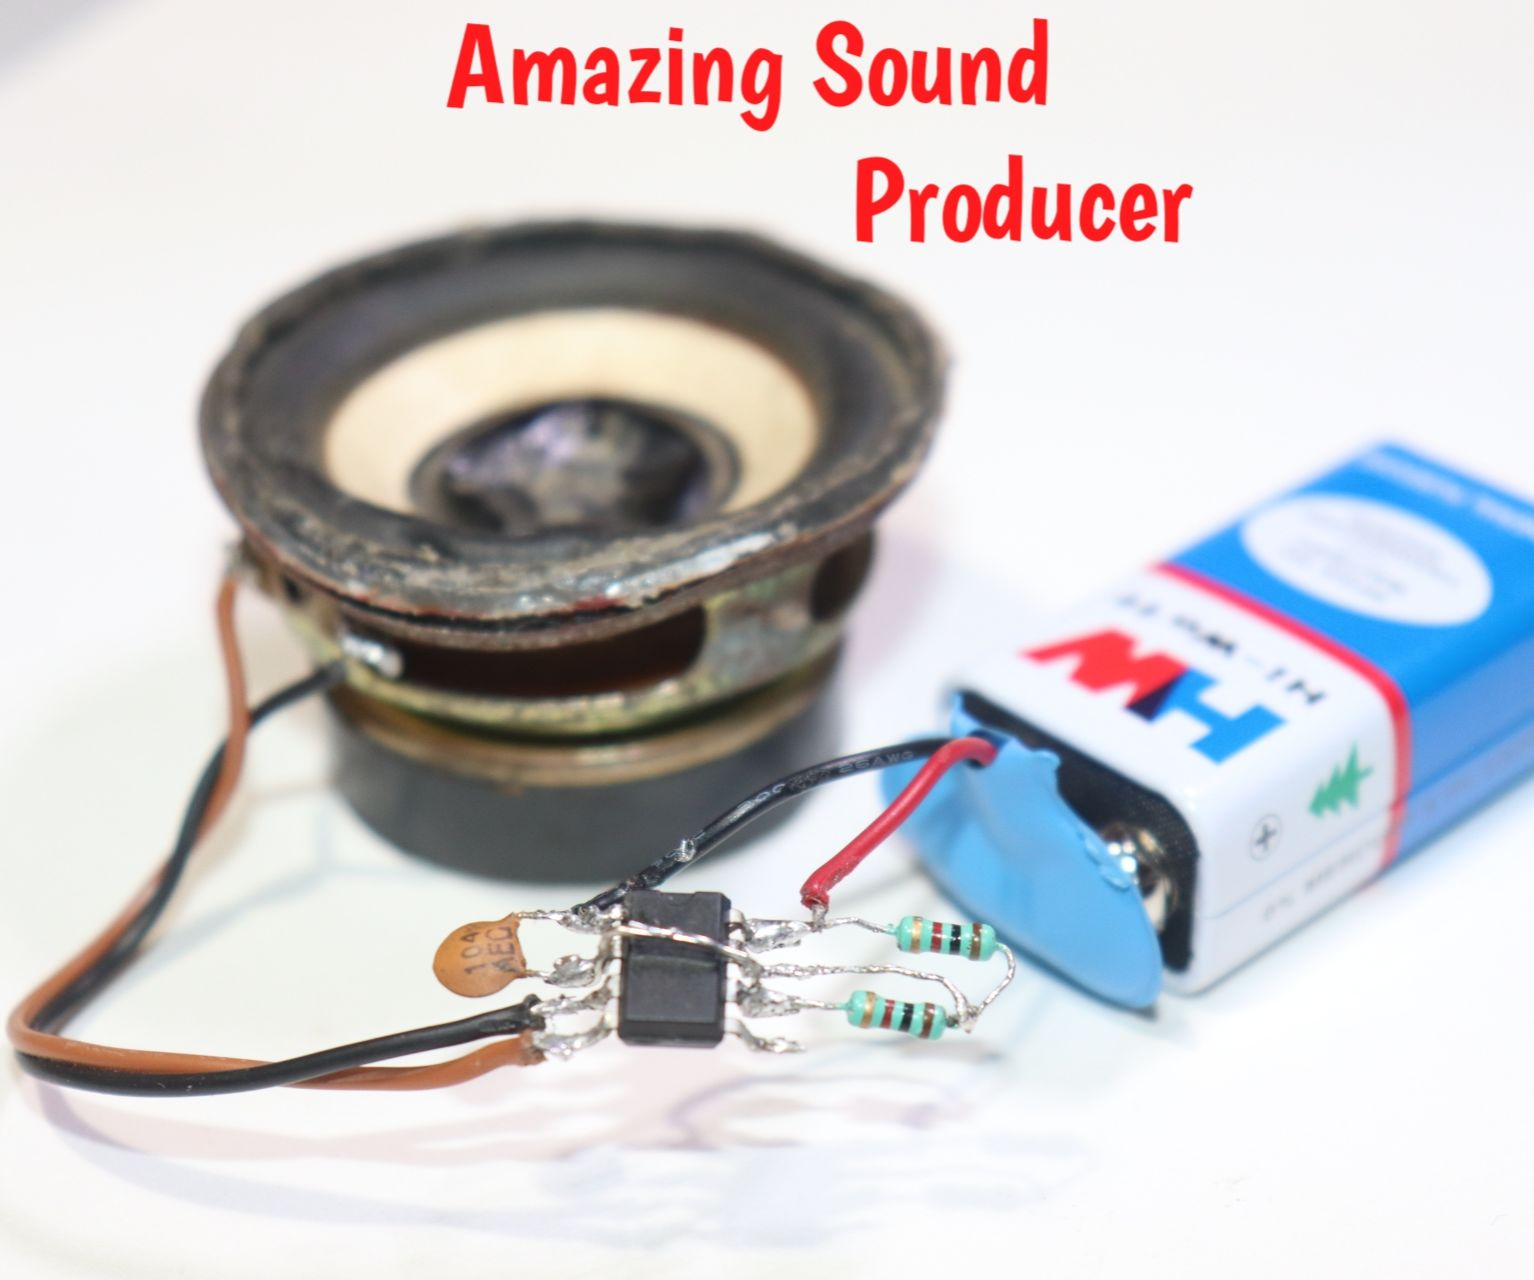 How to Make Amazing Sound Producer Using LM555 IC